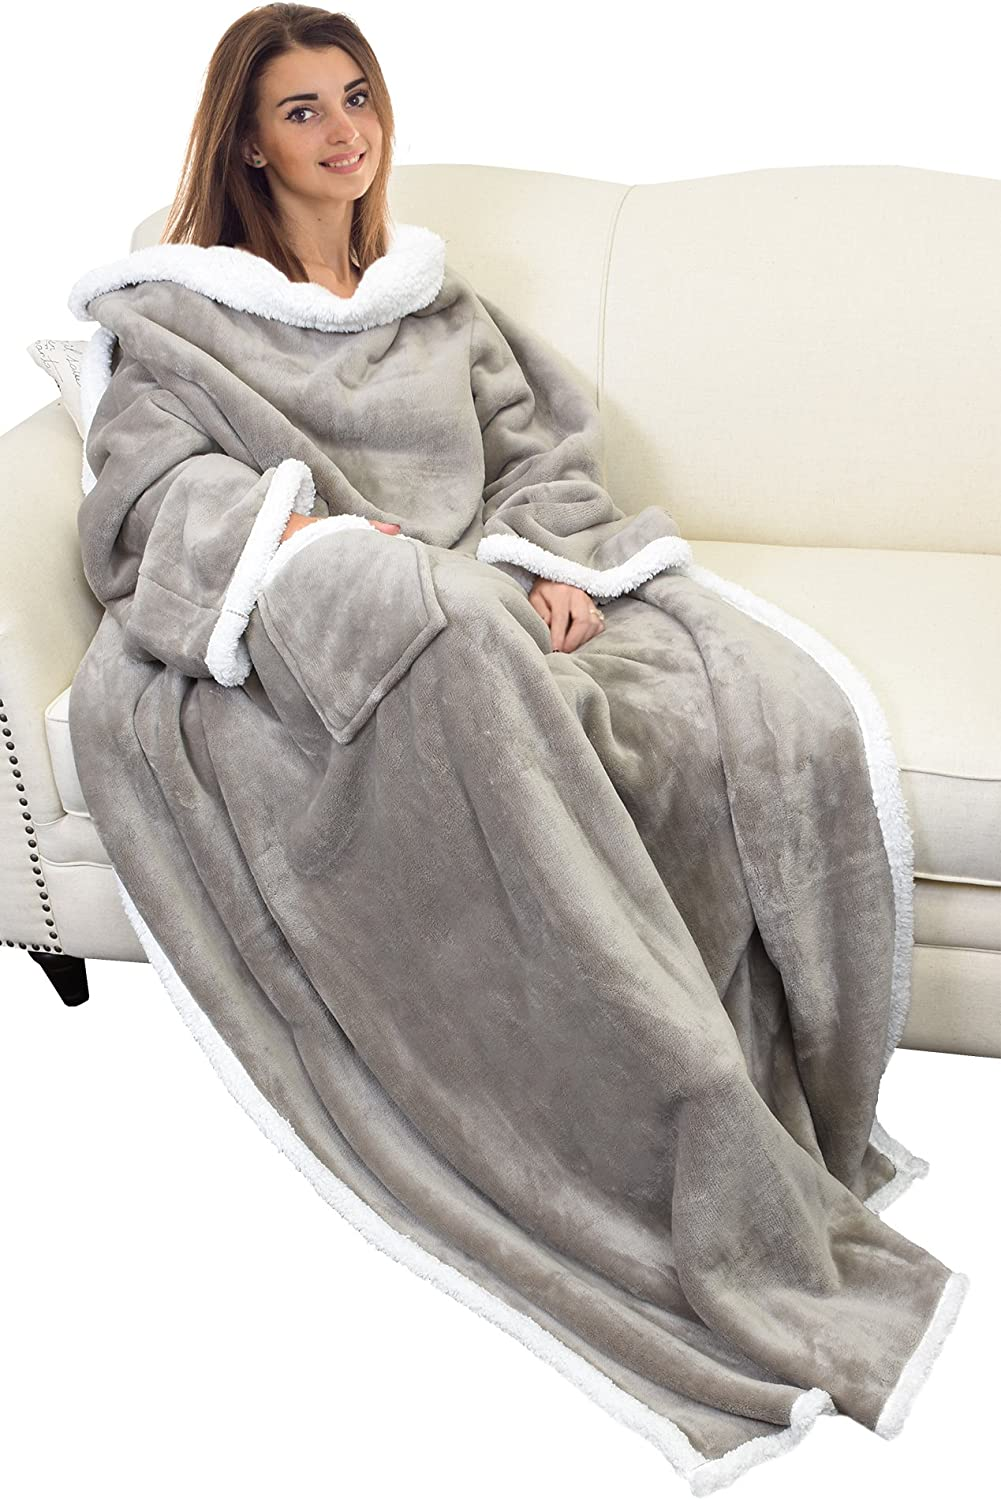 warm-blankets-for-holiday-gift-ideas